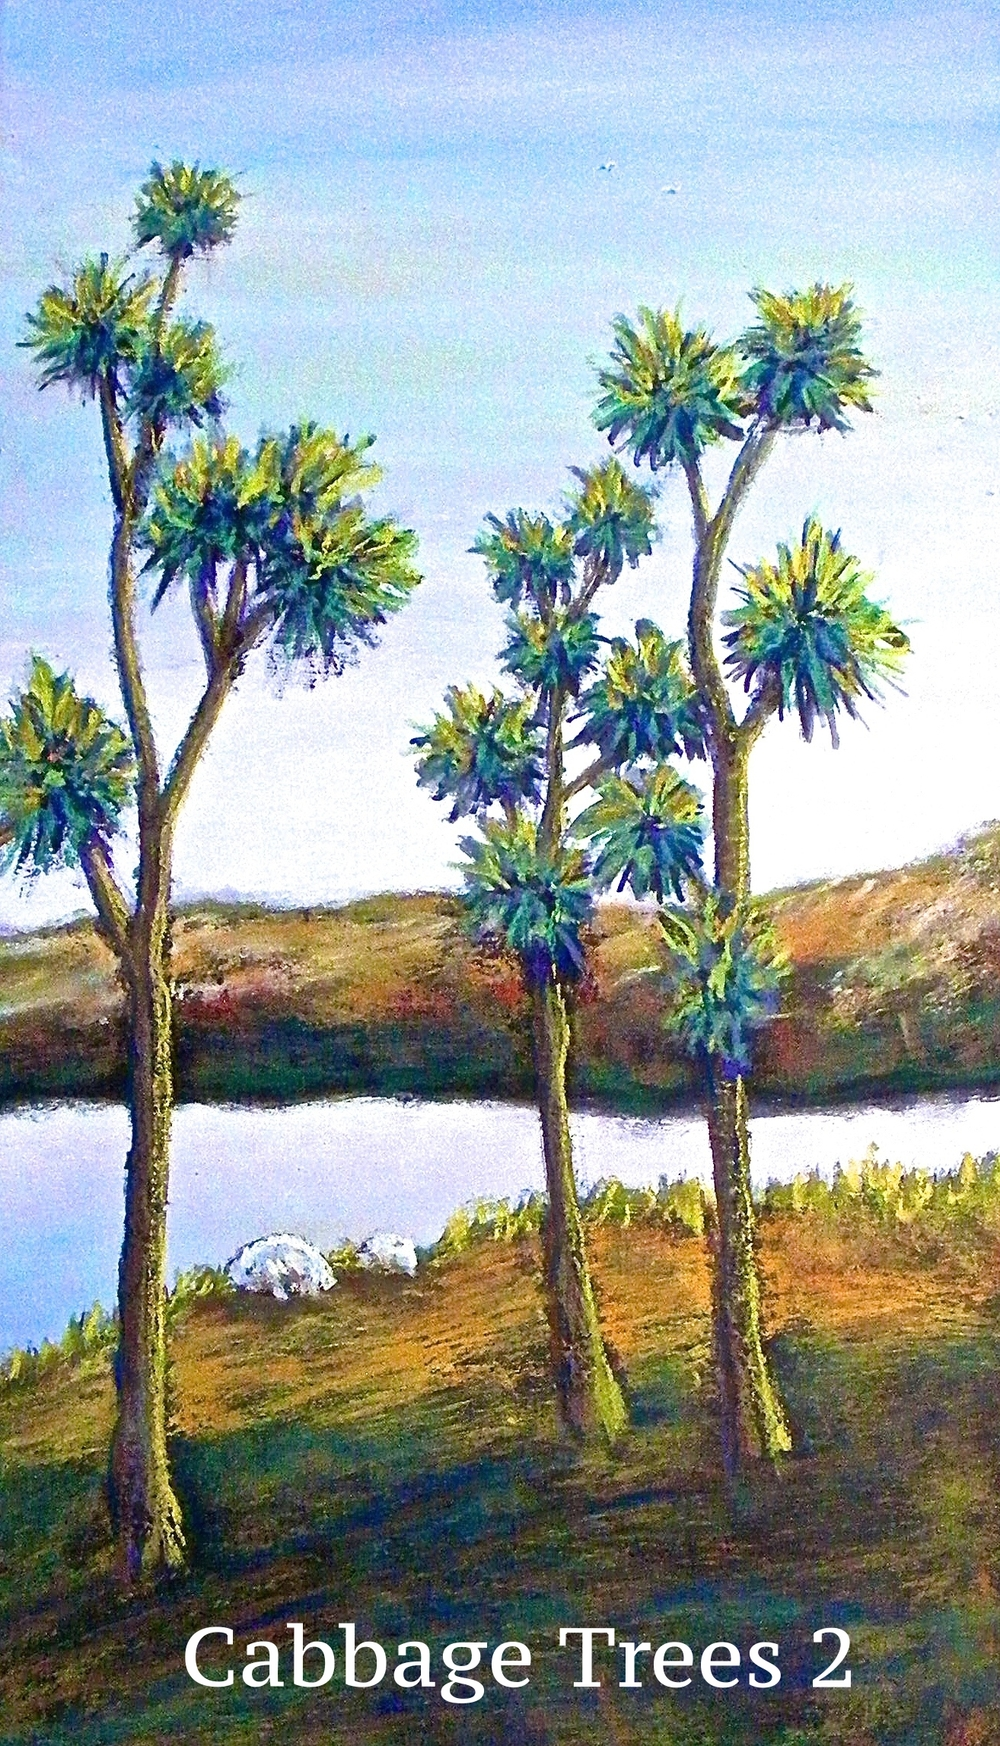 Cabbage trees 2